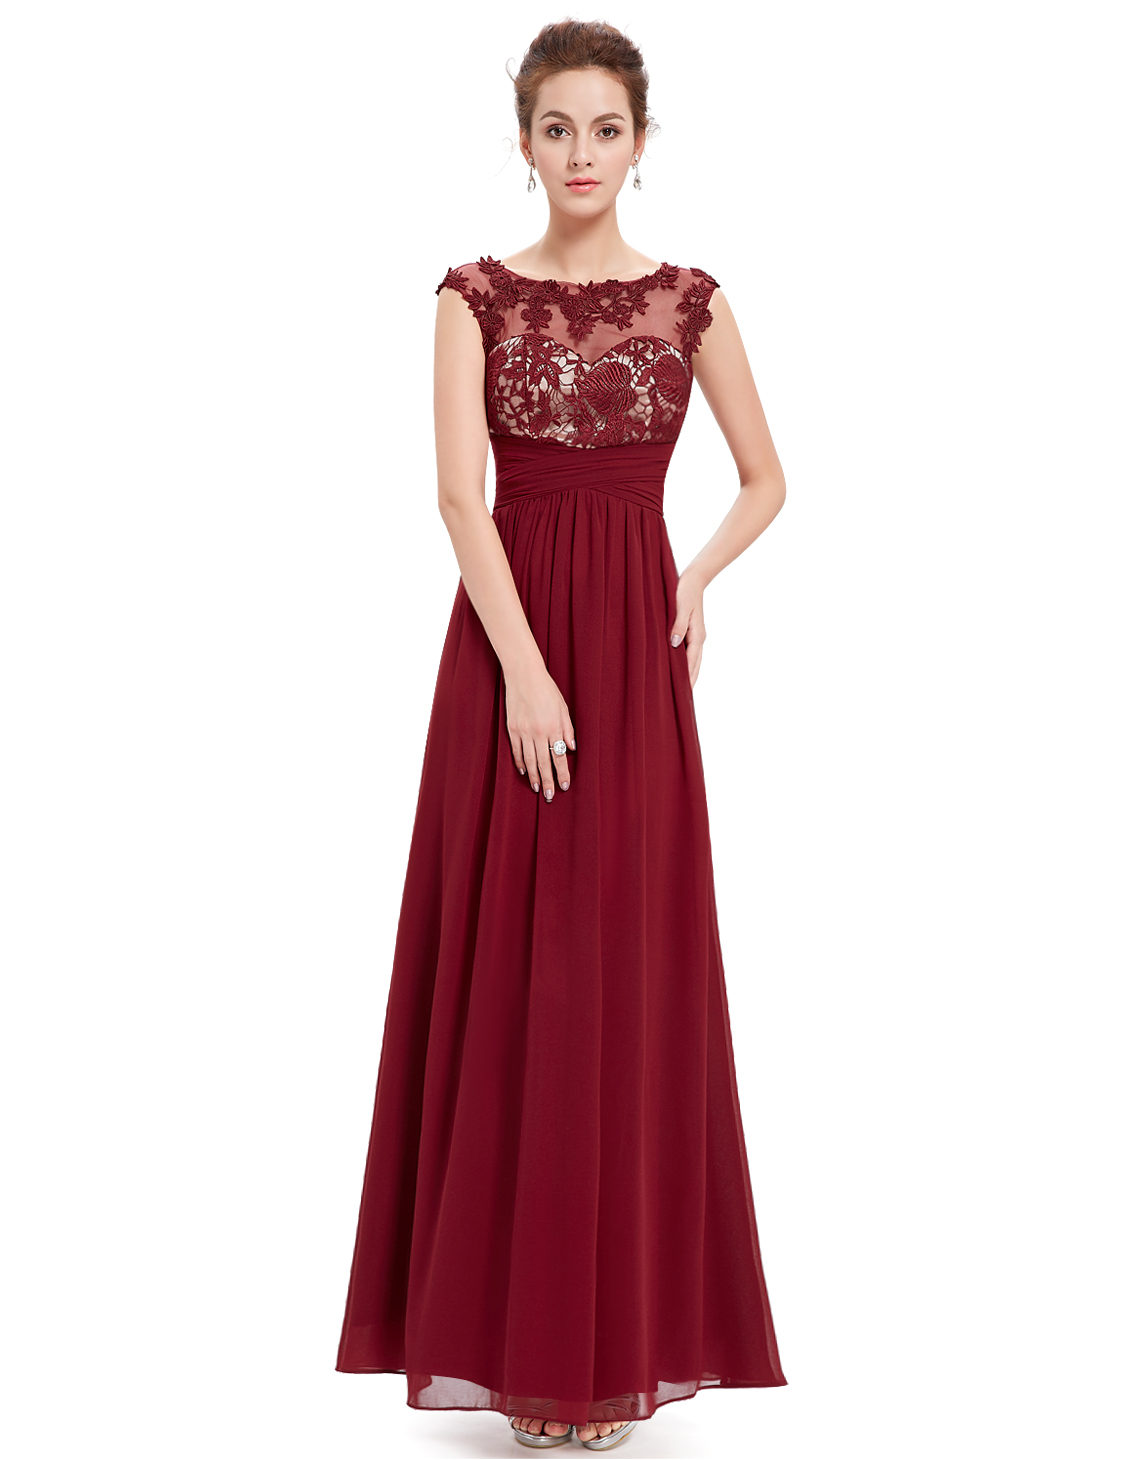 UK Applique Elegant Long Bridesmaid Party Dress Cocktail ...